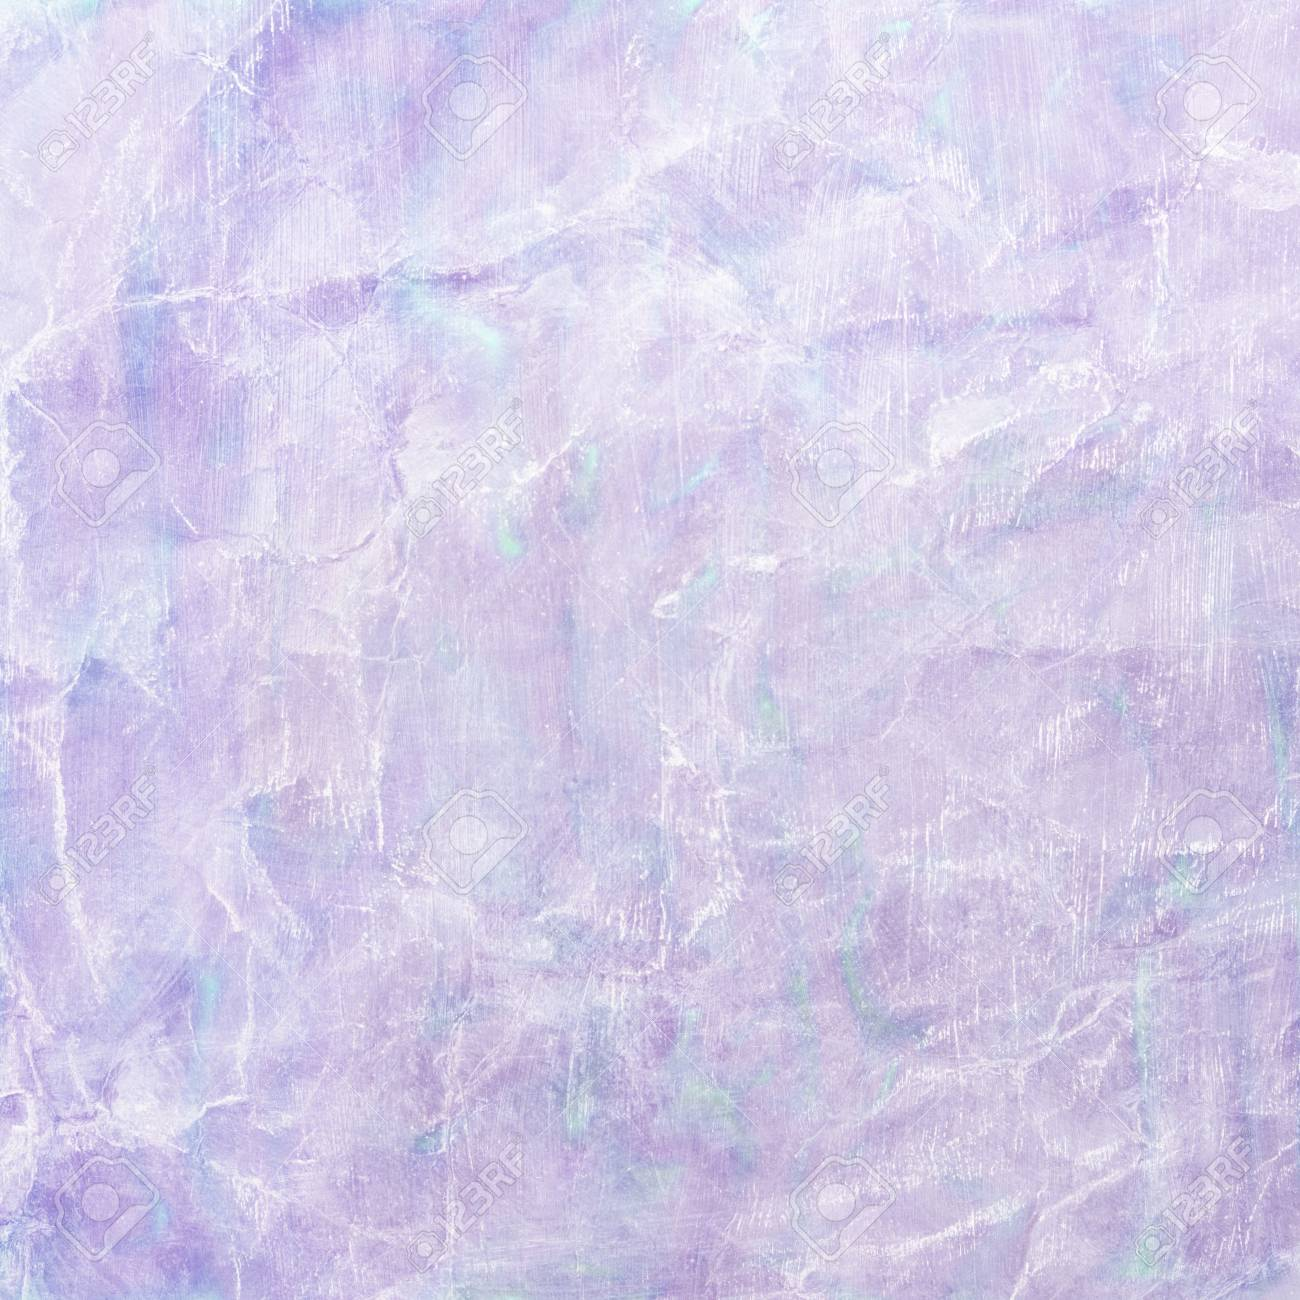 old wrinkled paper background with pastel watercolor paint wash illustration in purple and blue colors with white faded wrinkles or folded creases, crinkled paper texture - 77034155